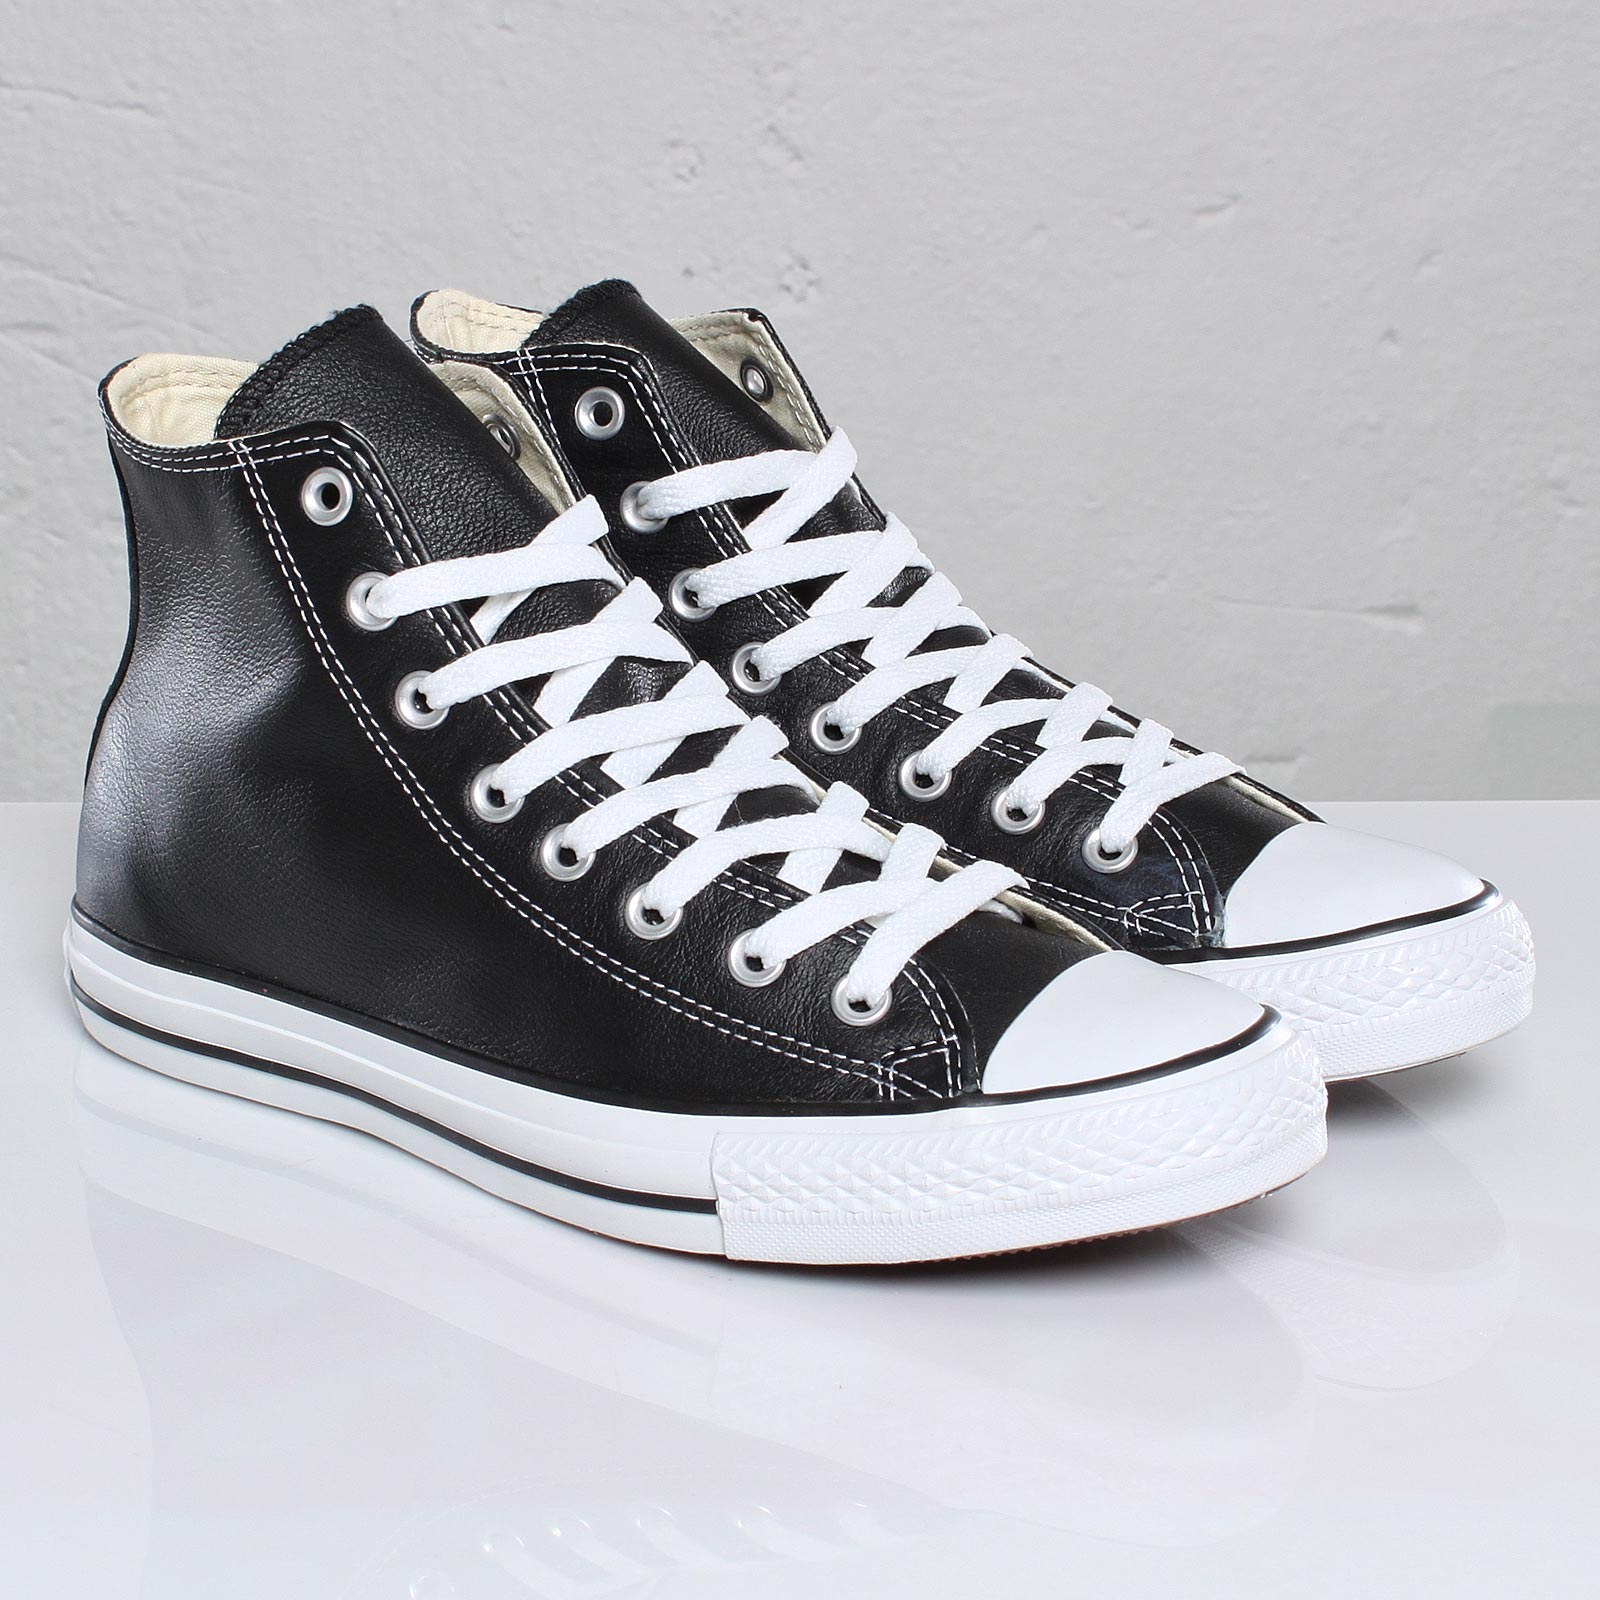 converse all player